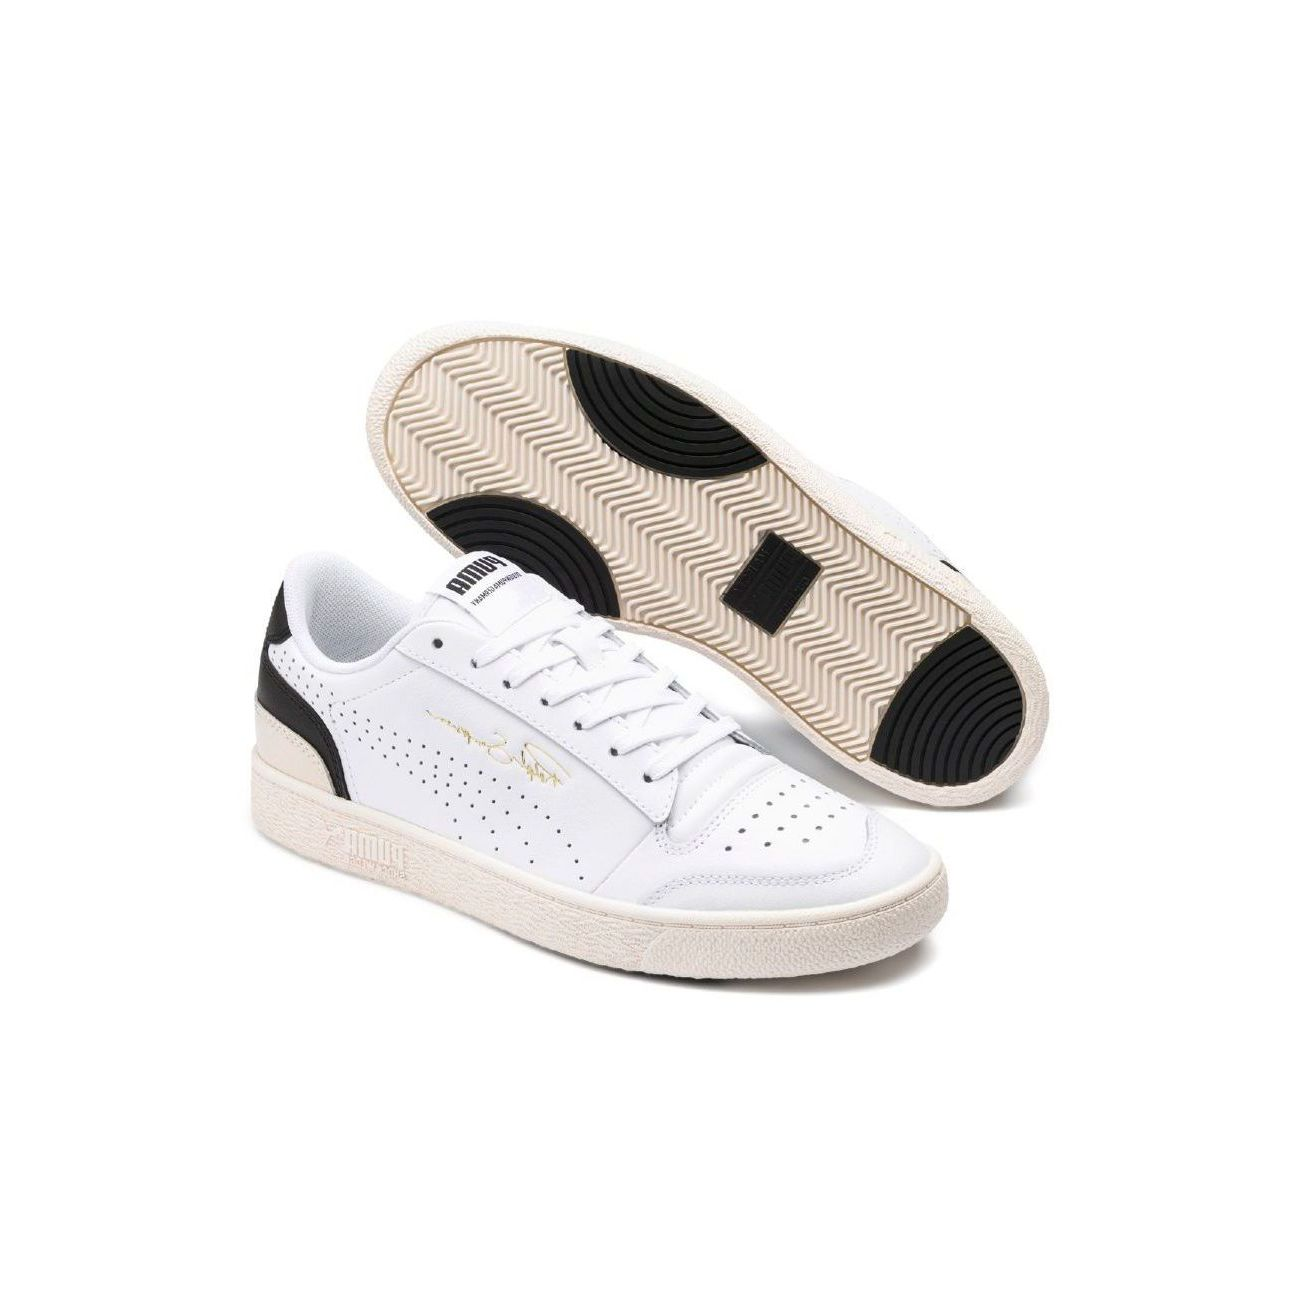 Mode Lifestyle homme PUMA Baskets RALPH SAMPSON LO PERF